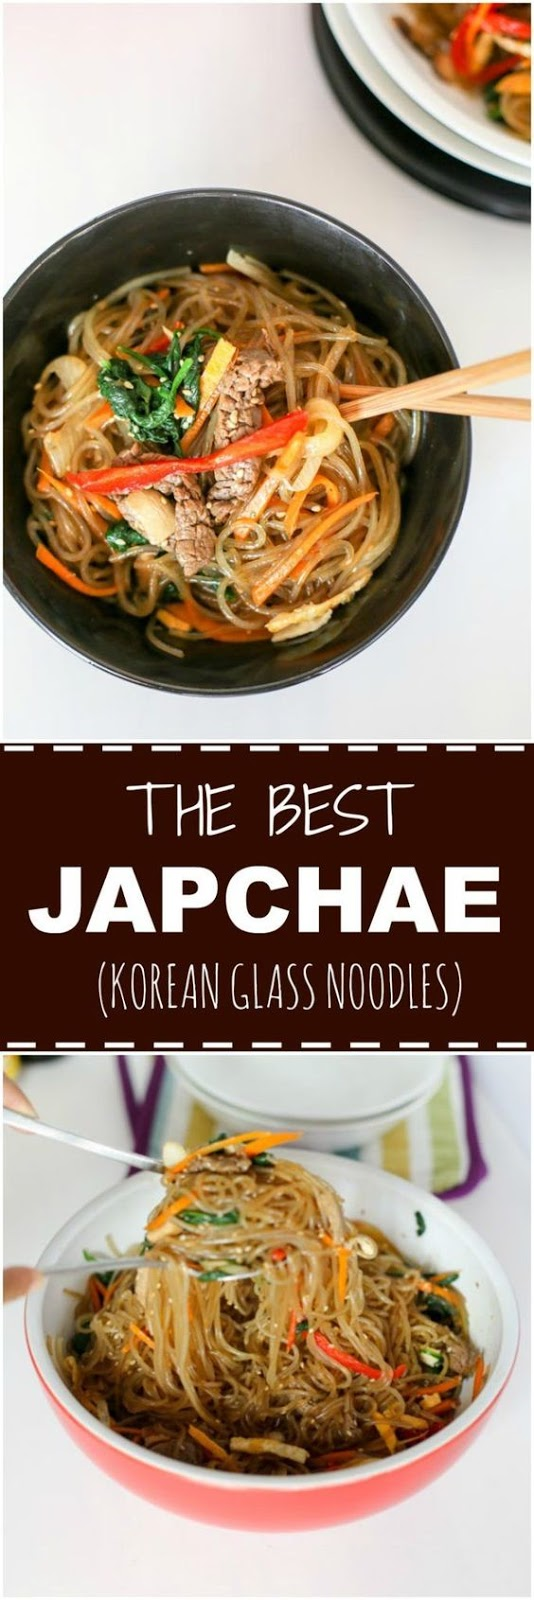 Japchae (Korean Glass Noodle Stir Fry)